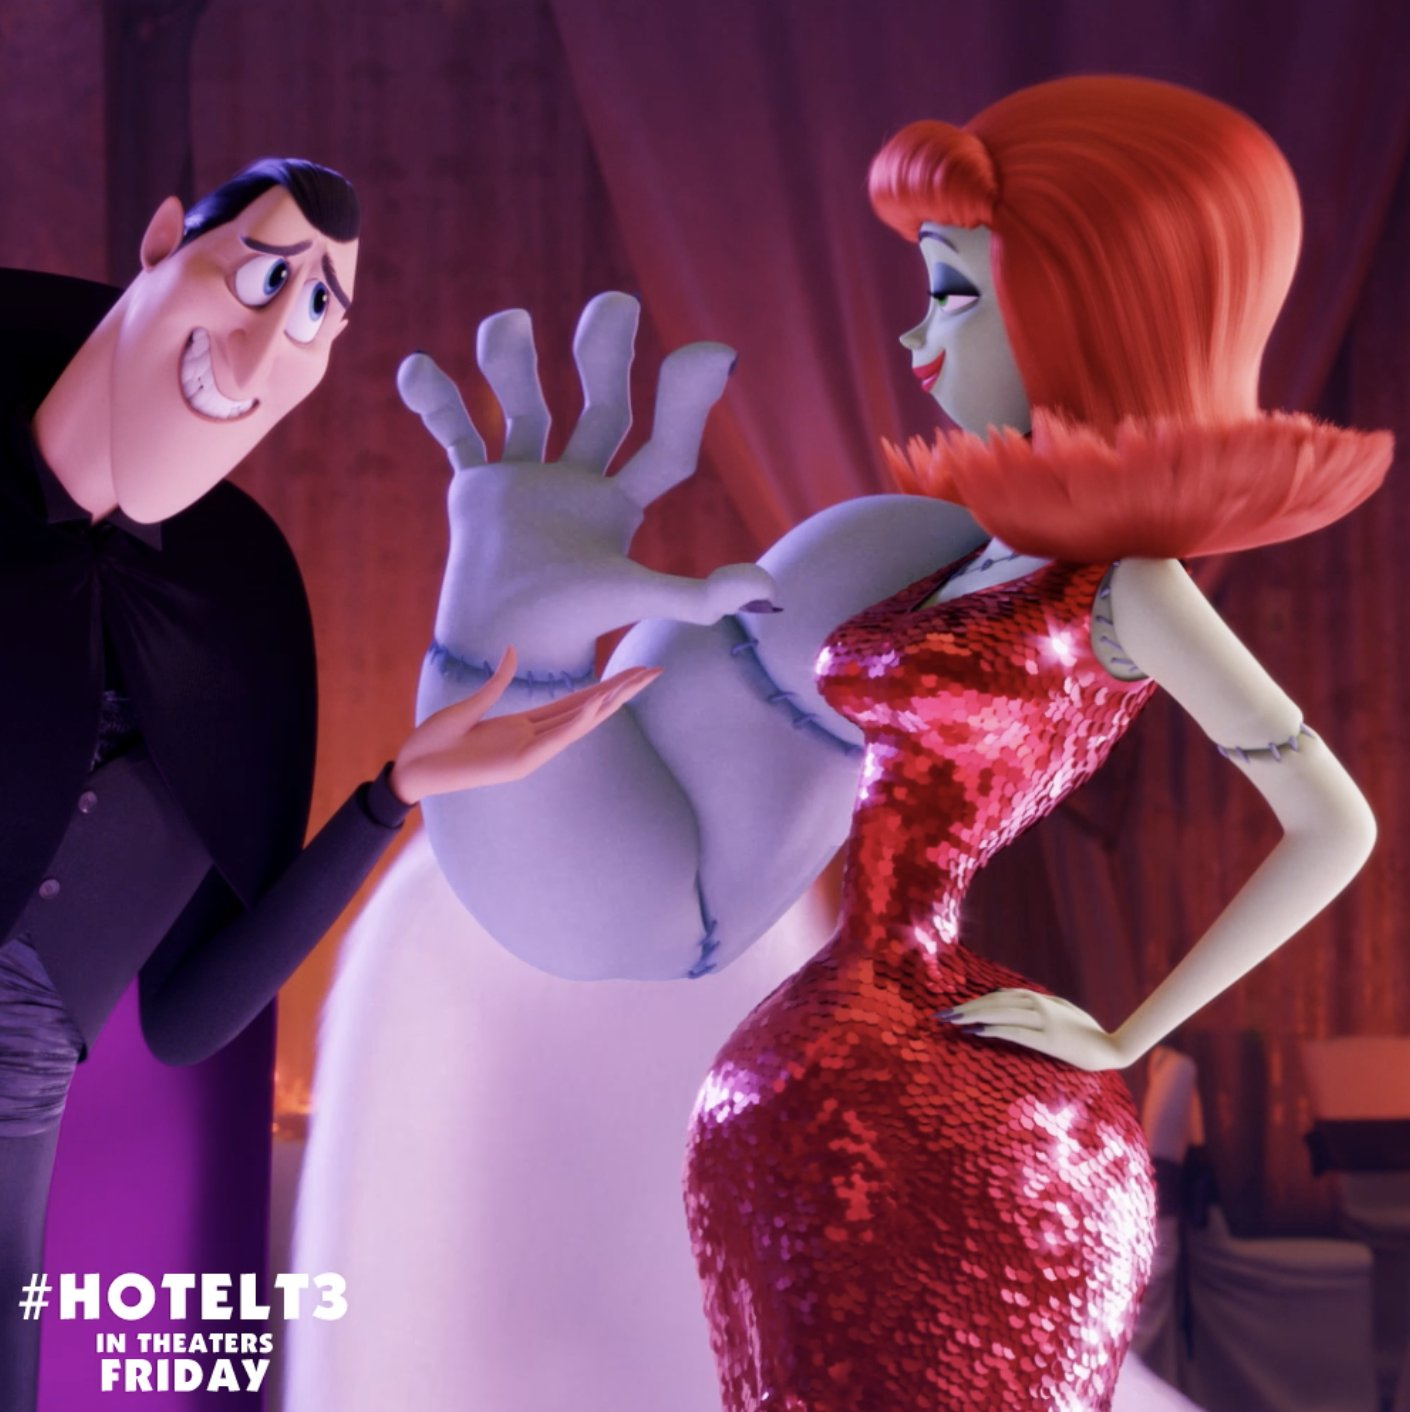 This Friday the 13th: set sail with #HotelT3! Don't miss the boat – get your tickets now: https://t.co/dA7RDCexPr �� https://t.co/EZ0KoO7szw